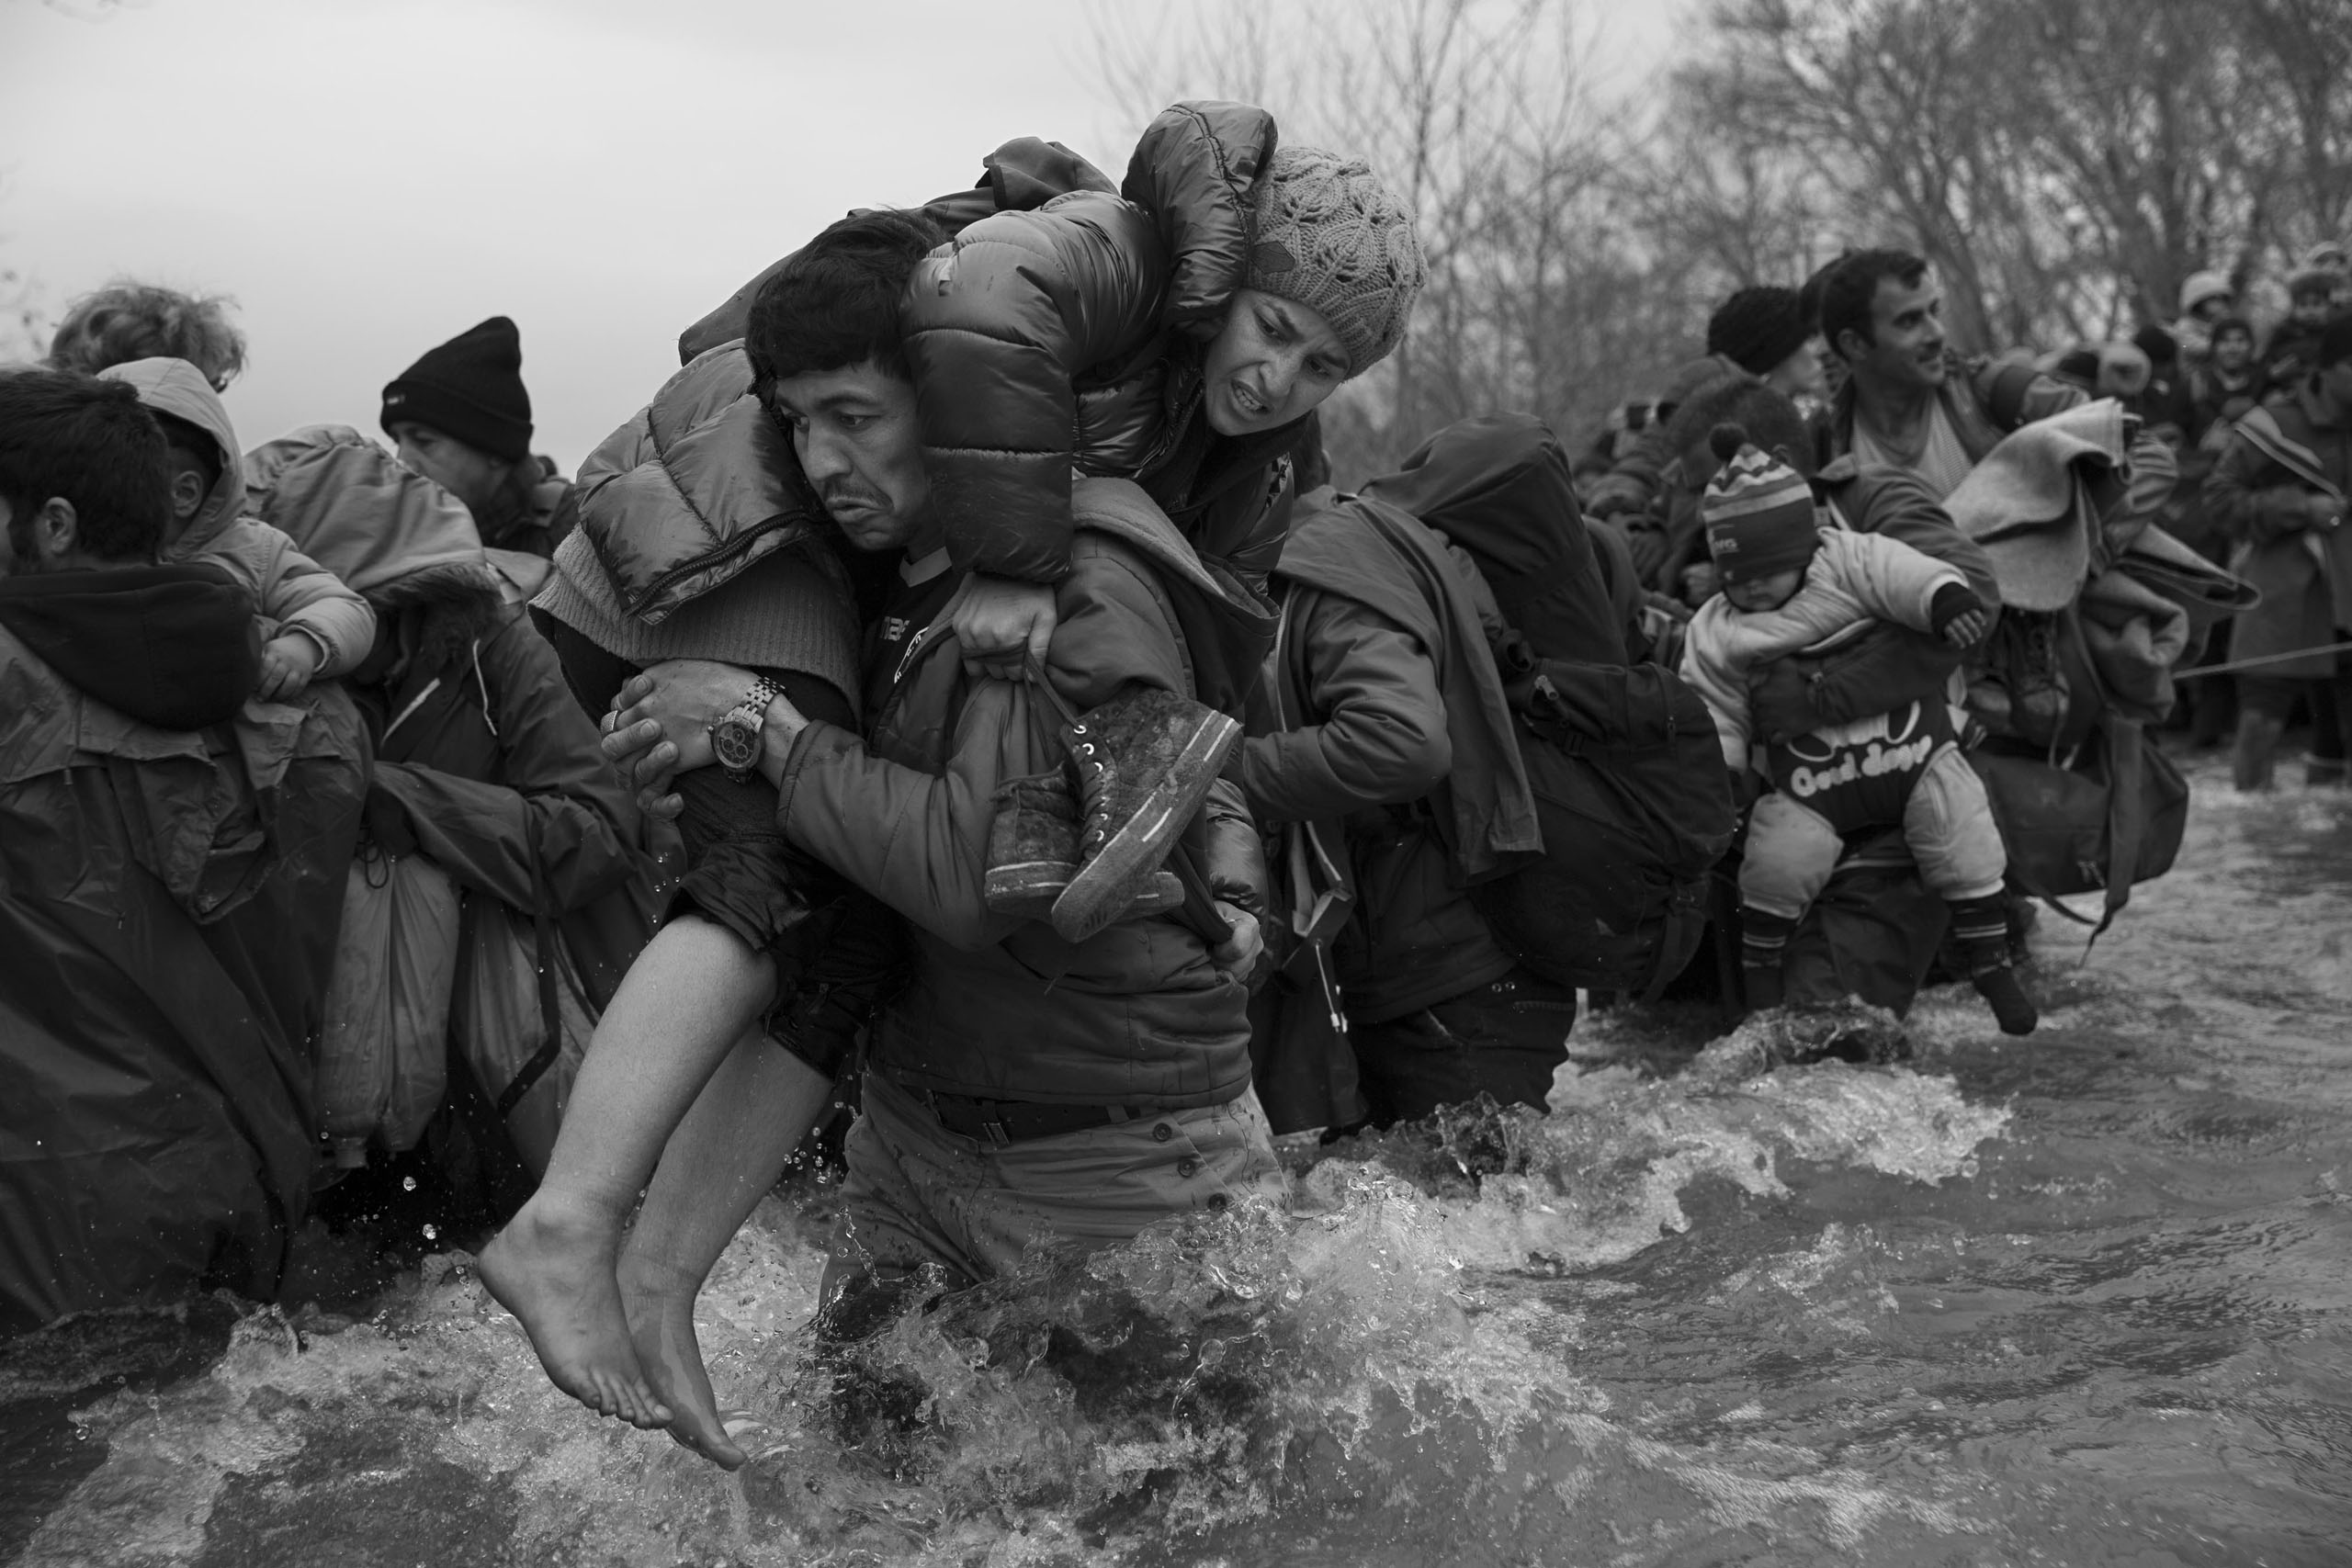 An estimated 1,000 migrants made their way from the camp in                   Idomeni, Greece and crossed a river near the border in the hopes of crossing into Macedonia